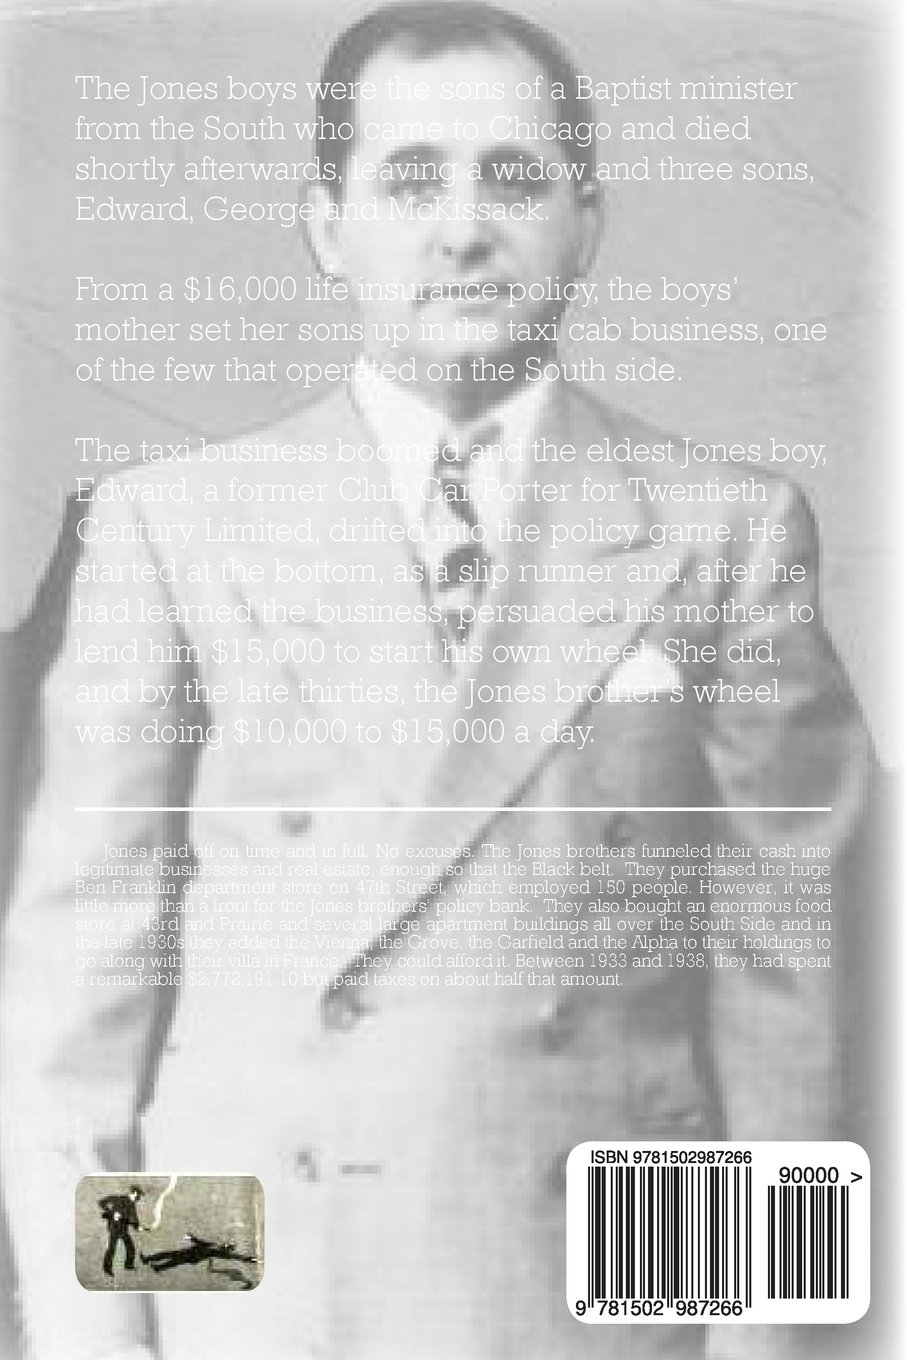 the mob sam giancana and the ovethrow of the black policy rackets in chicago dwayne johnson 9781502987266 amazoncom books